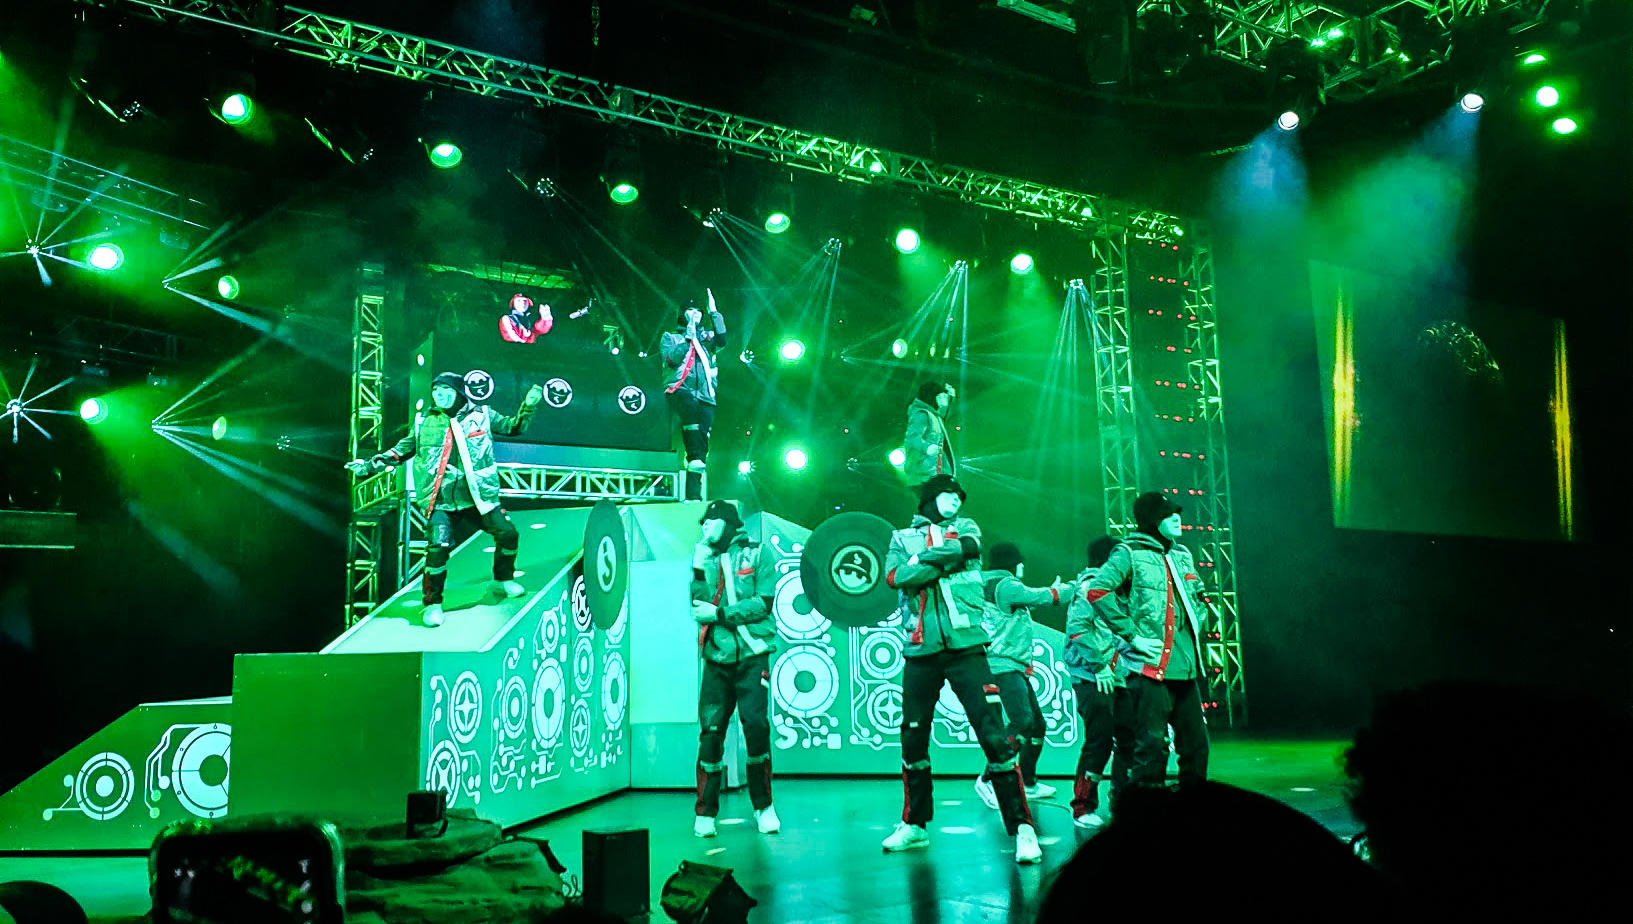 The whole crew is on stage, lit in bright green and the DJ rocks out